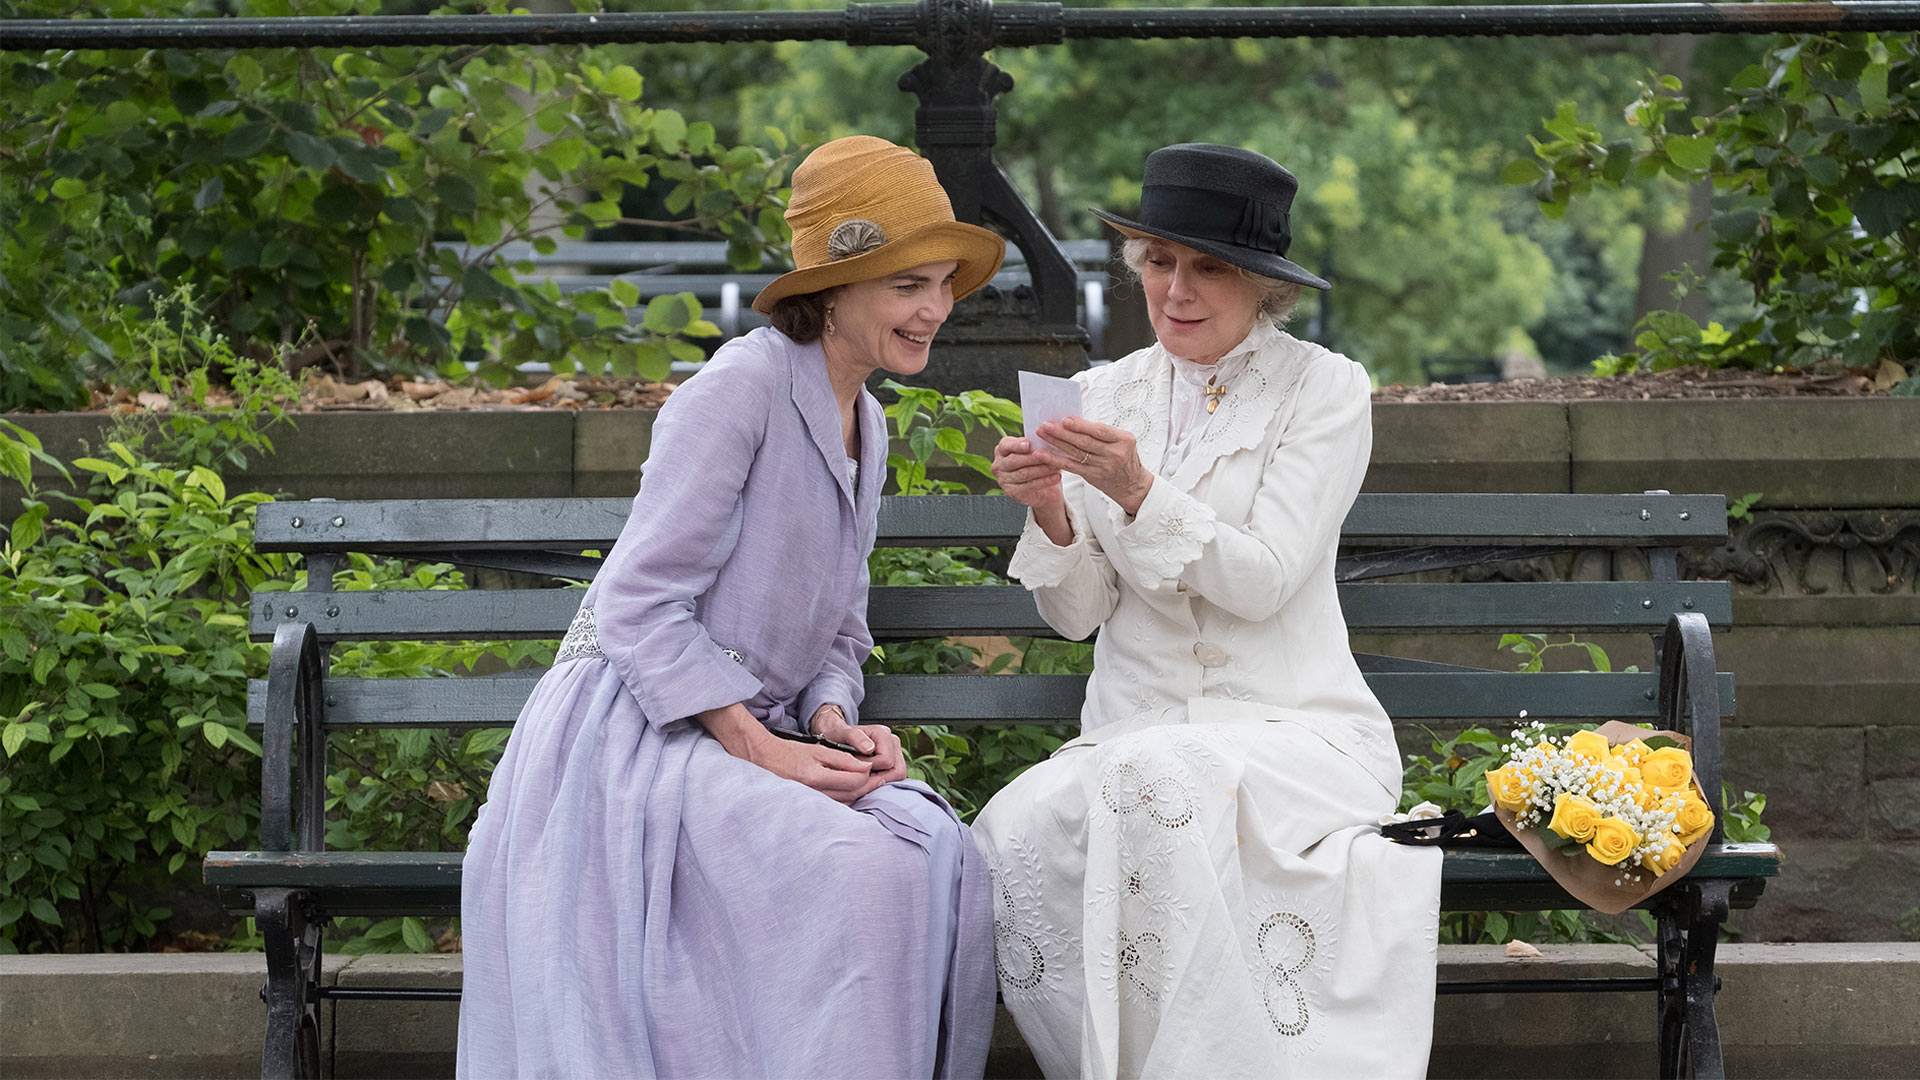 Shown from left to right: Elizabeth McGovern and Blythe Danner in The Chaperone